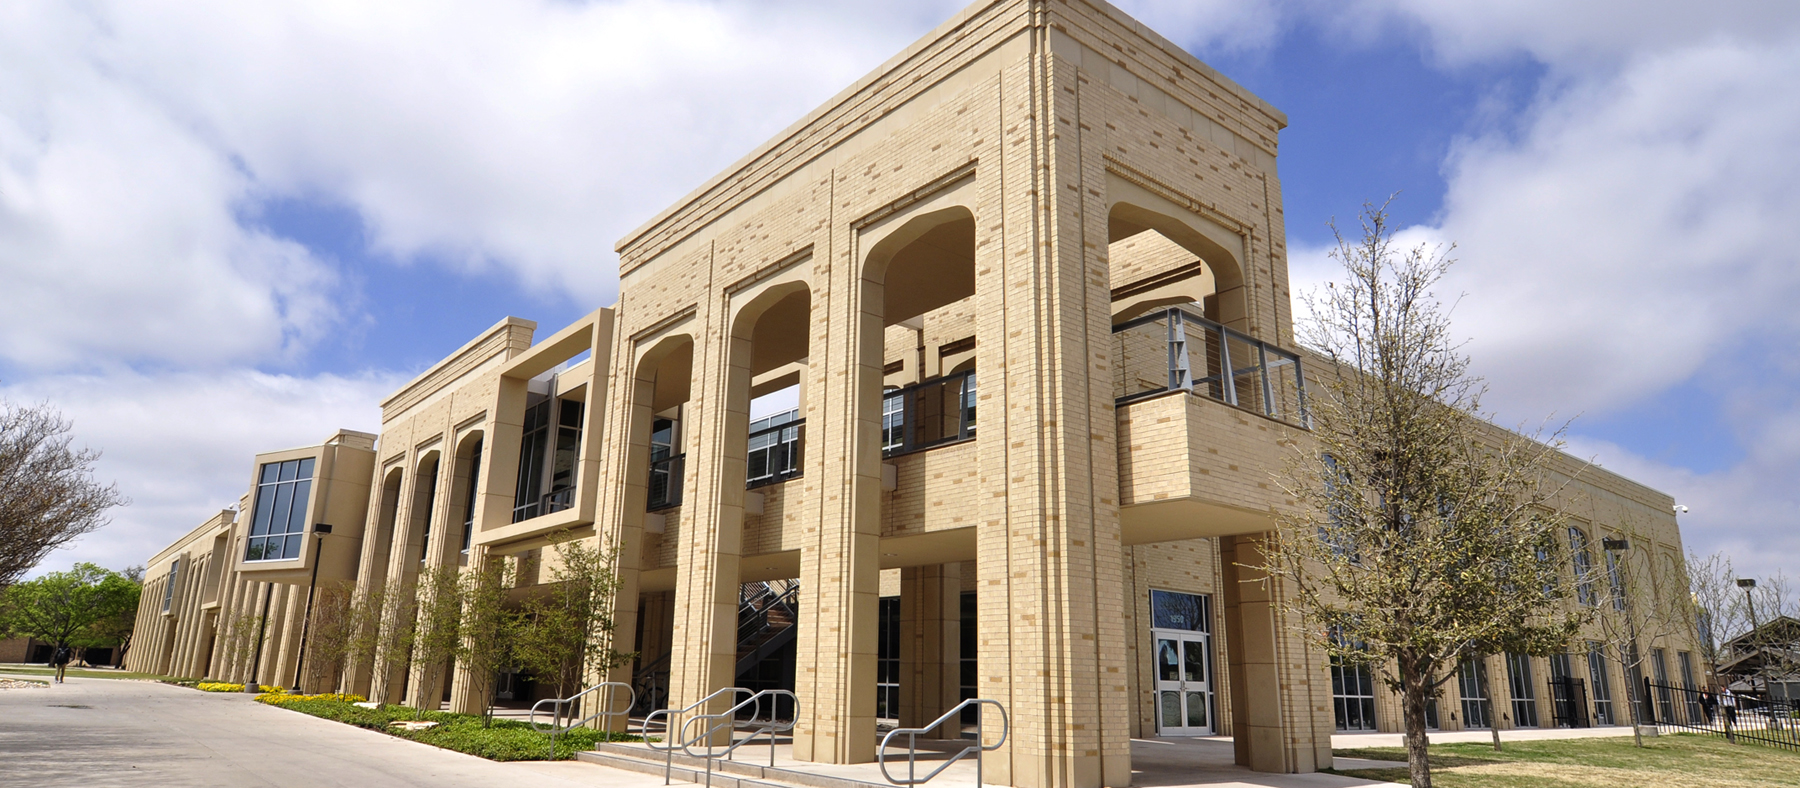 ACU Wellness Center | Products: Architectural Cast Stone, Precast Concrete | Cladding, Color Matching